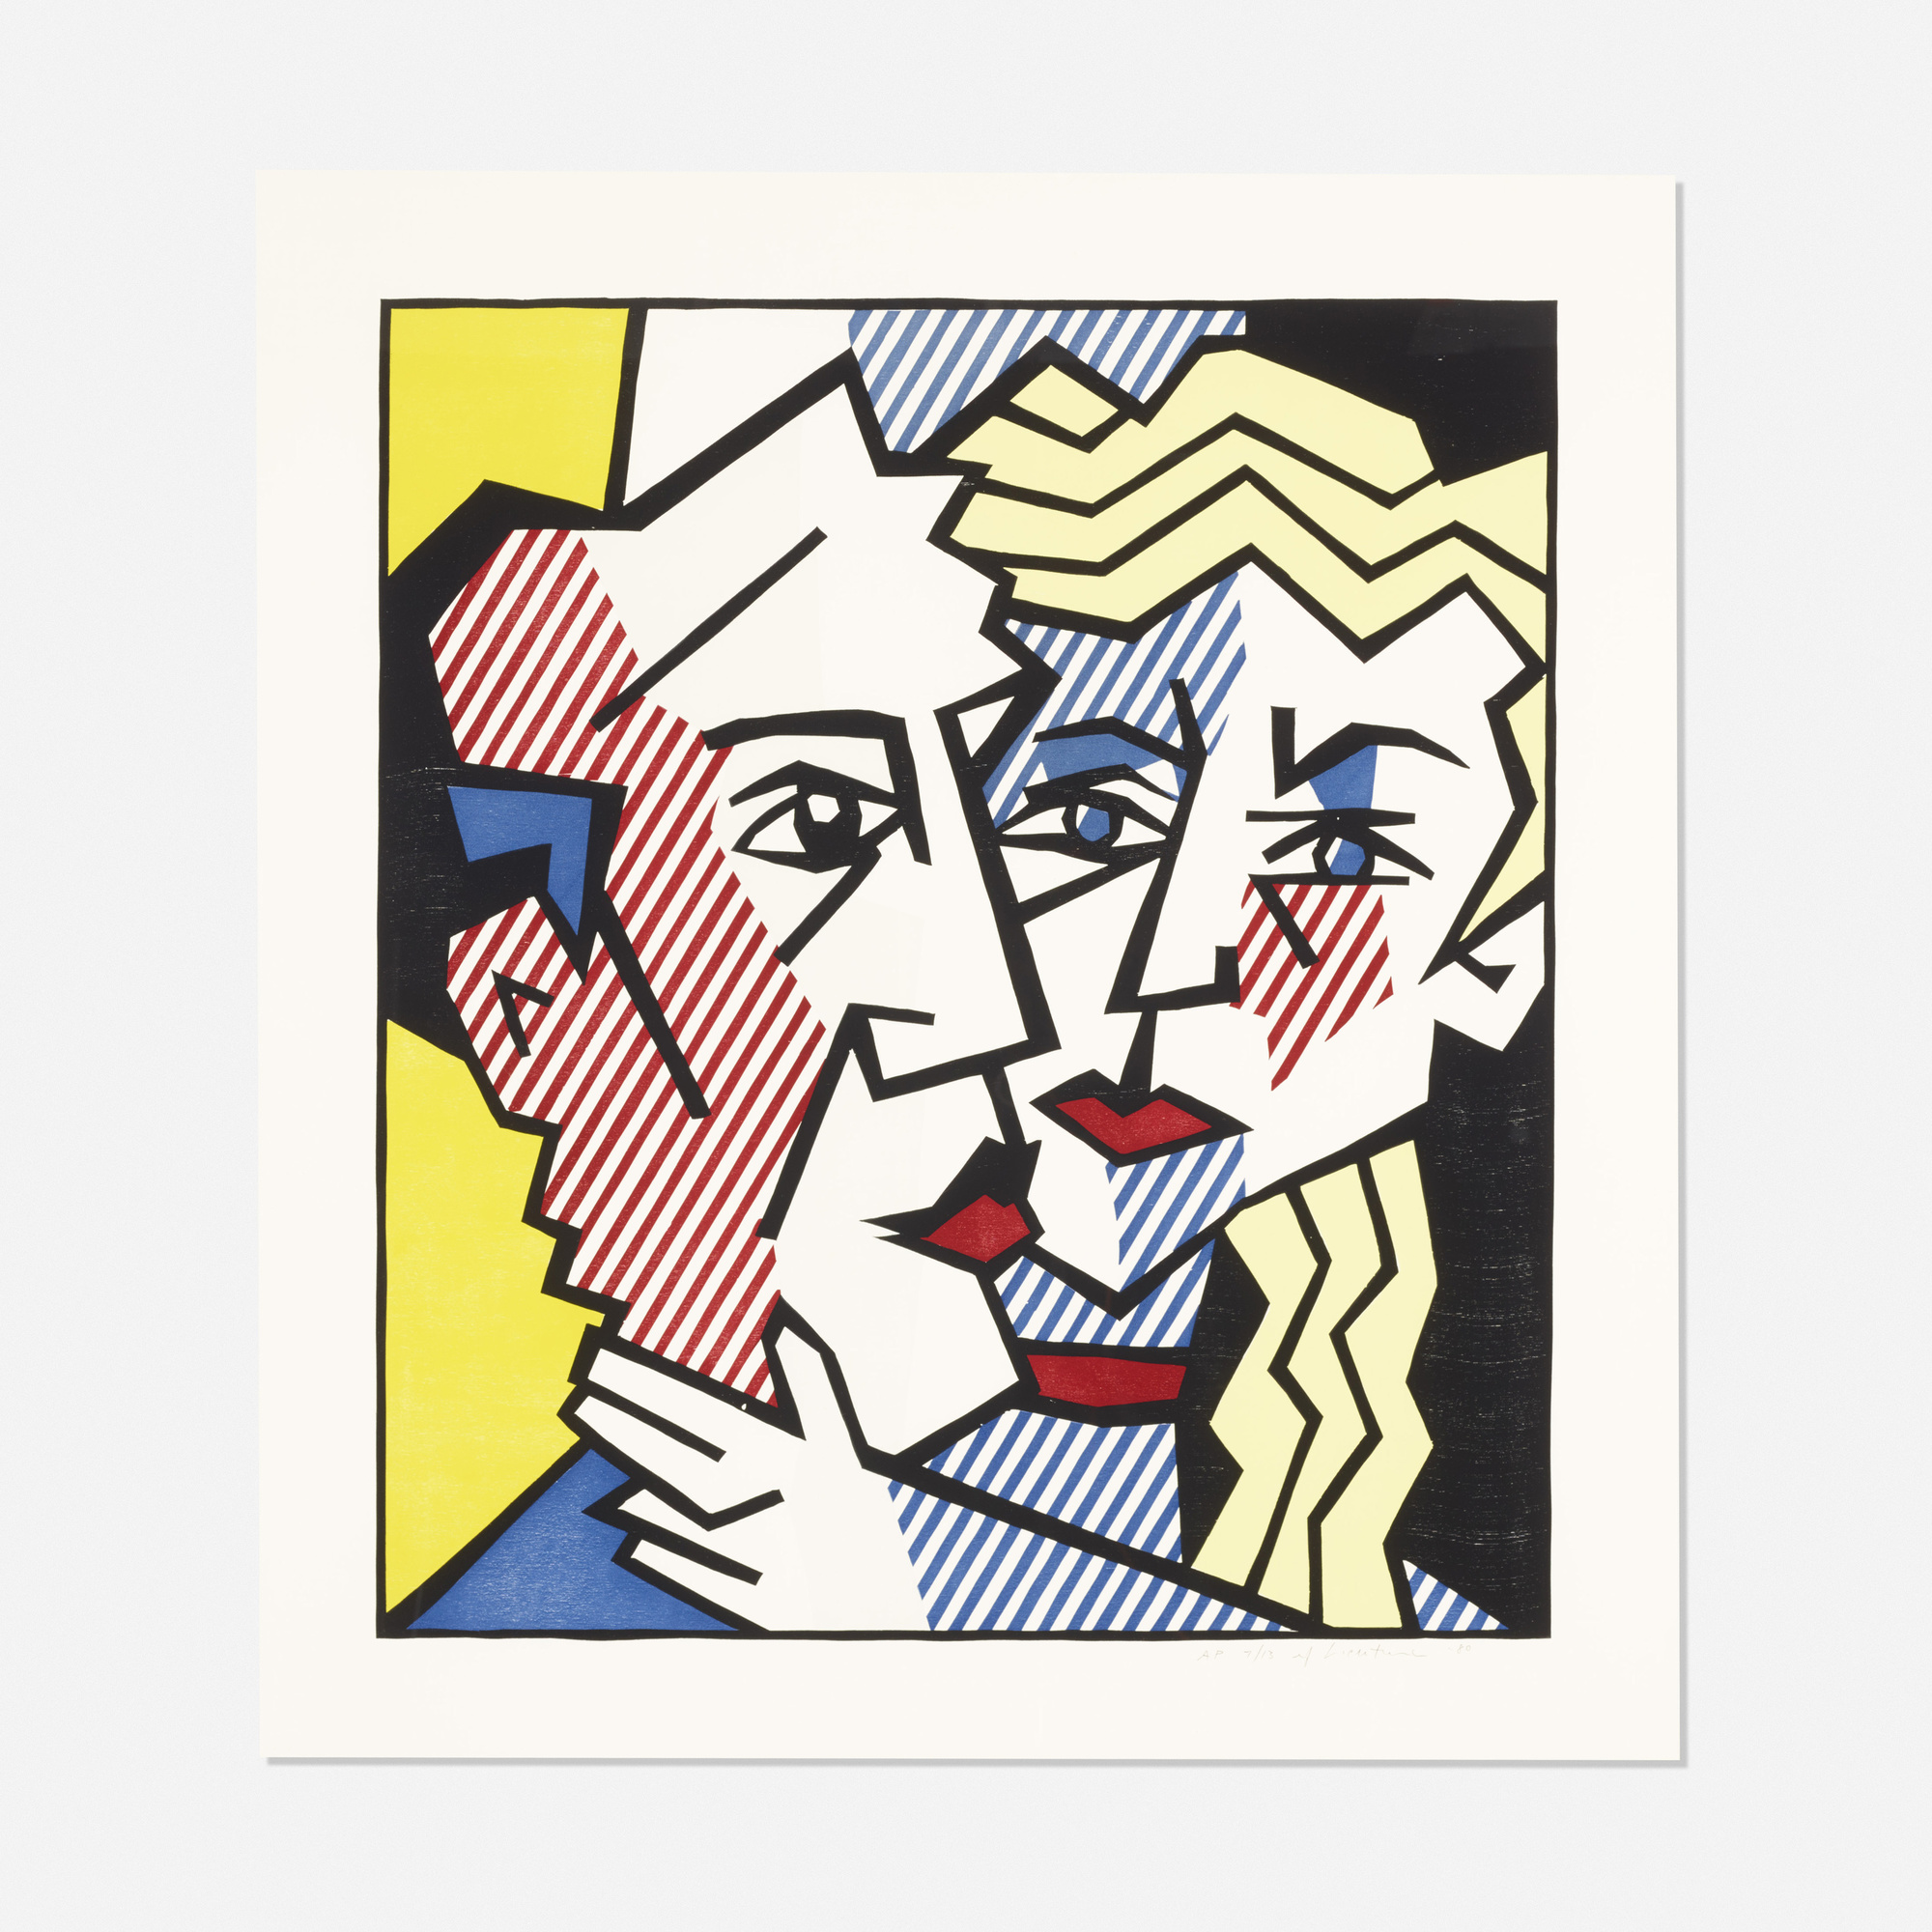 197: Roy Lichtenstein / The Couple (from the Expressionist Woodcut series) (1 of 1)